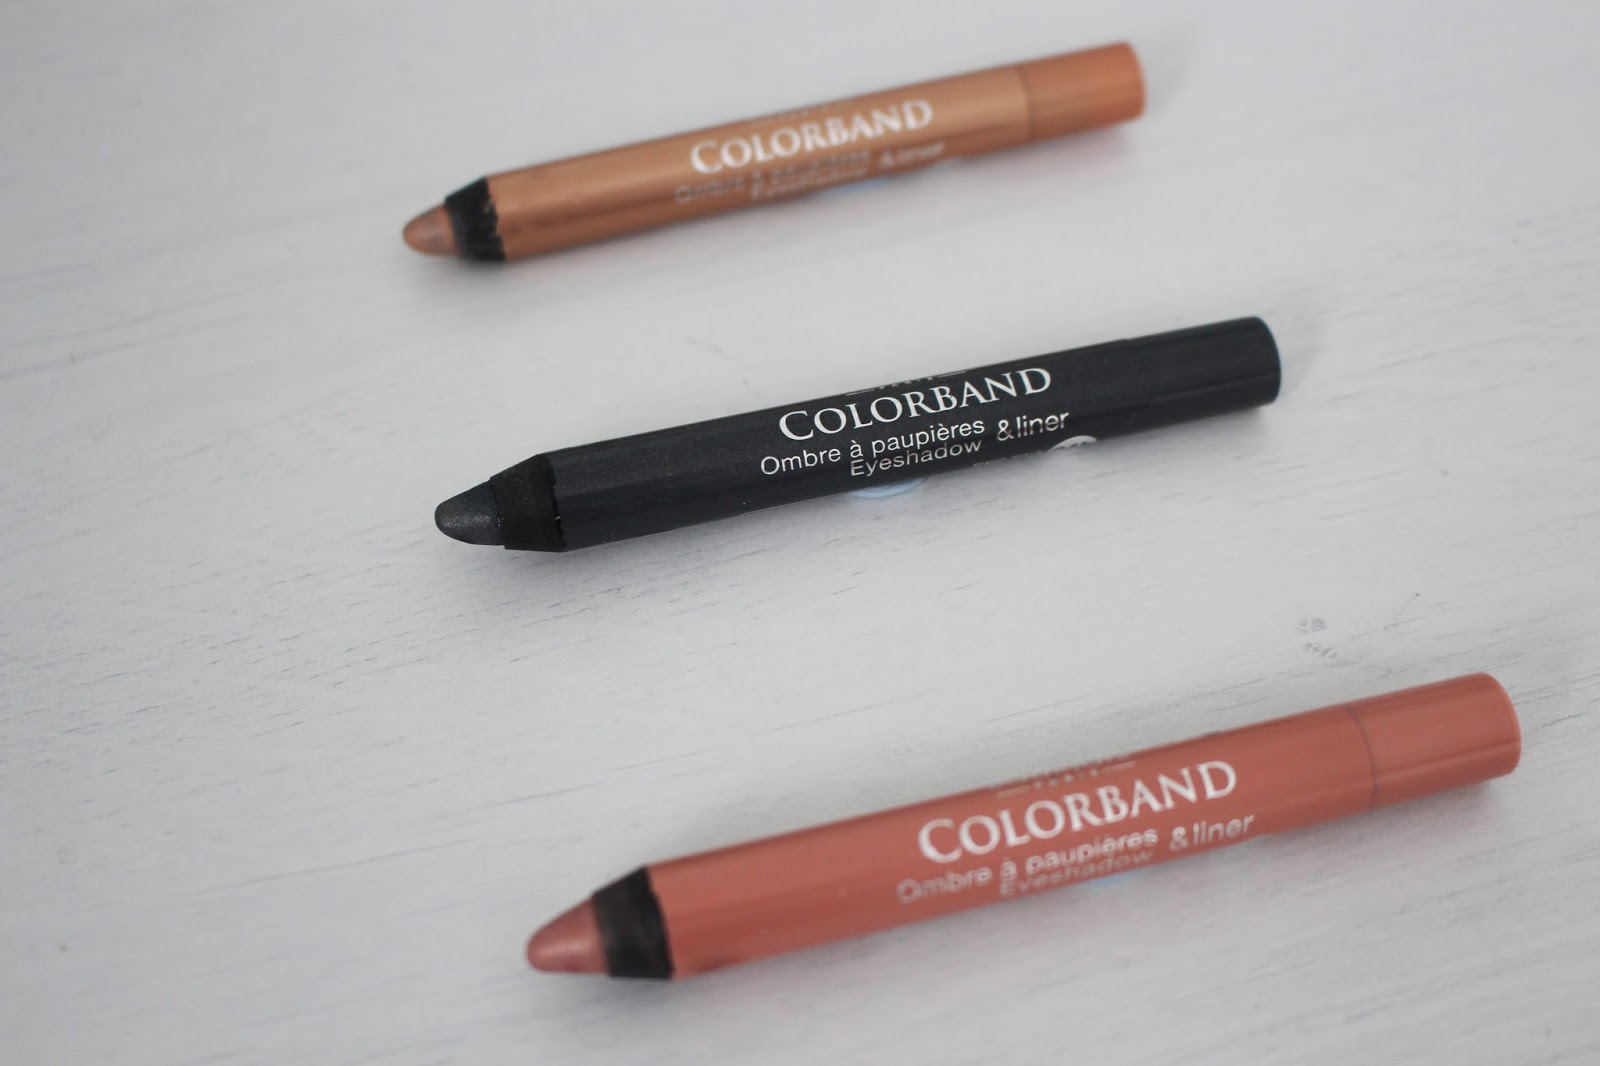 Bourjois Colorband Eyeshadow & Liner